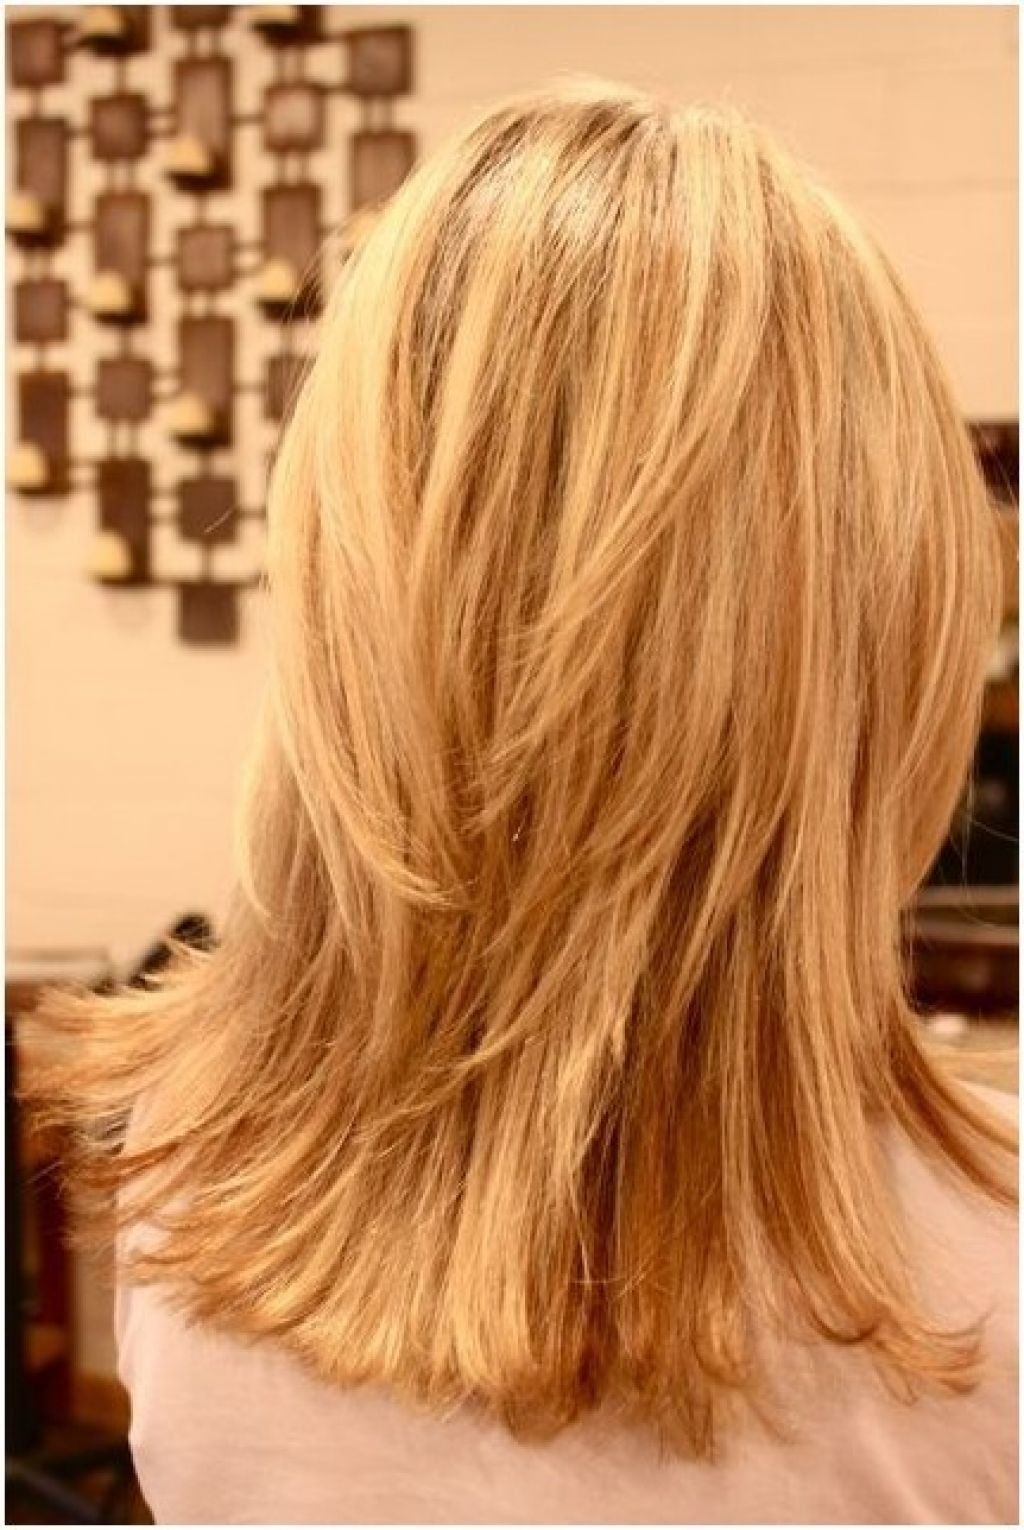 Coiffure Pour Cheveux Mi Long épais Long Layered Hairstyle Back View Women Hairstyles